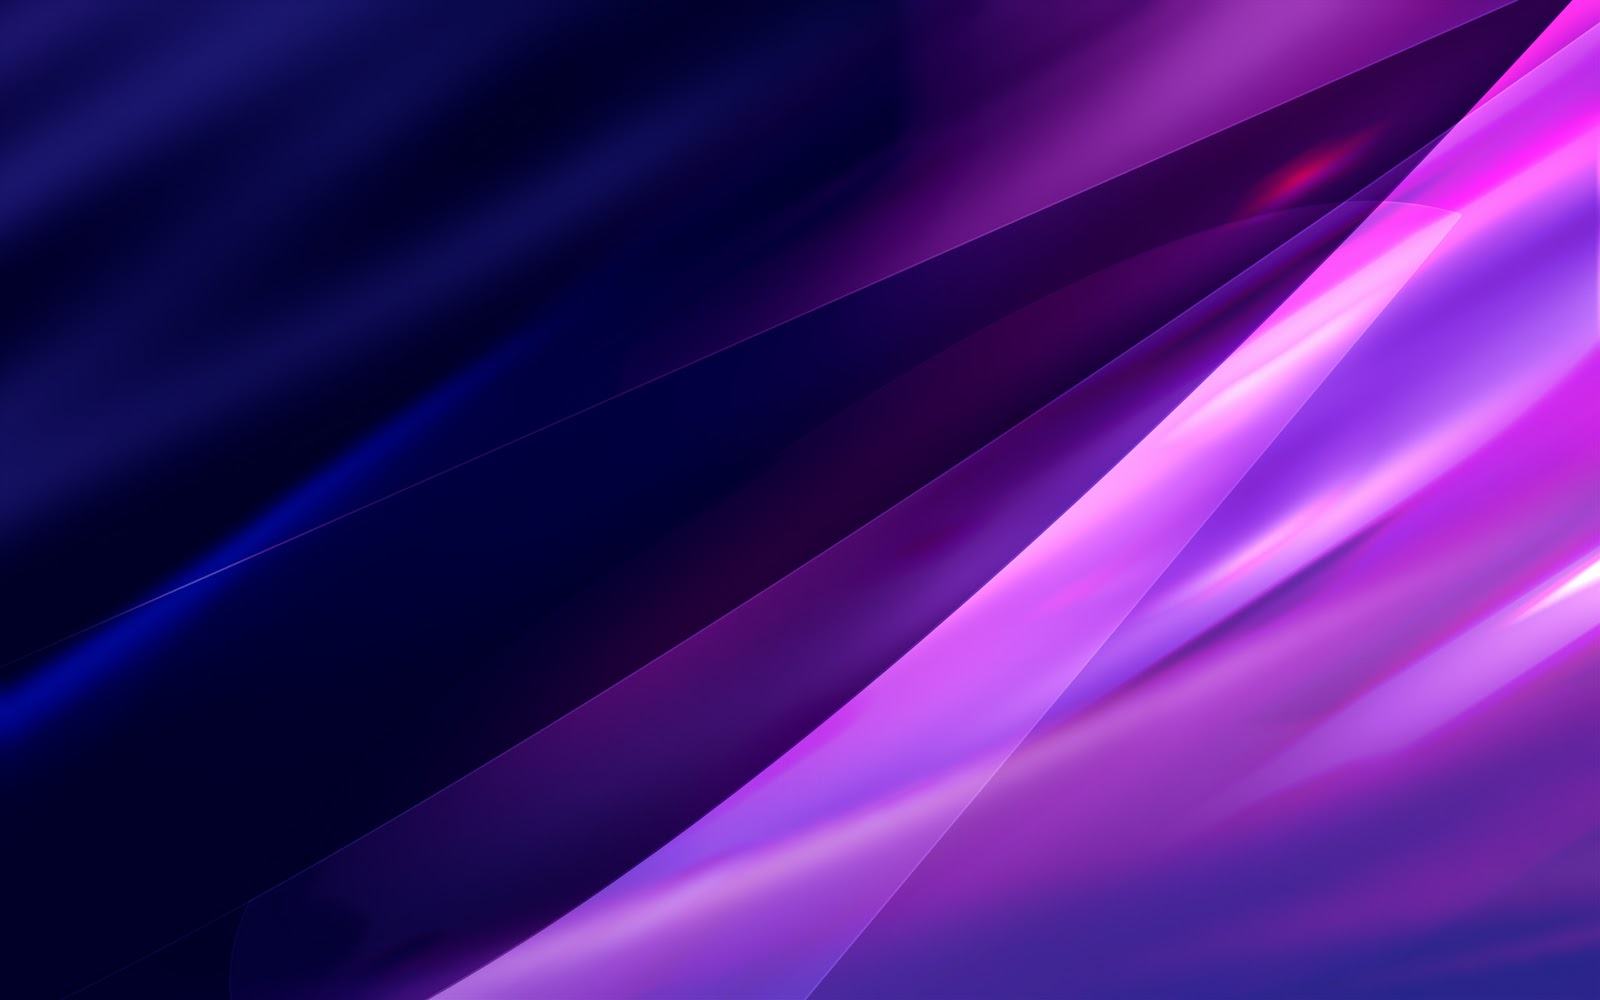 Black and White Wallpapers: Abstract Purple Wallpaper